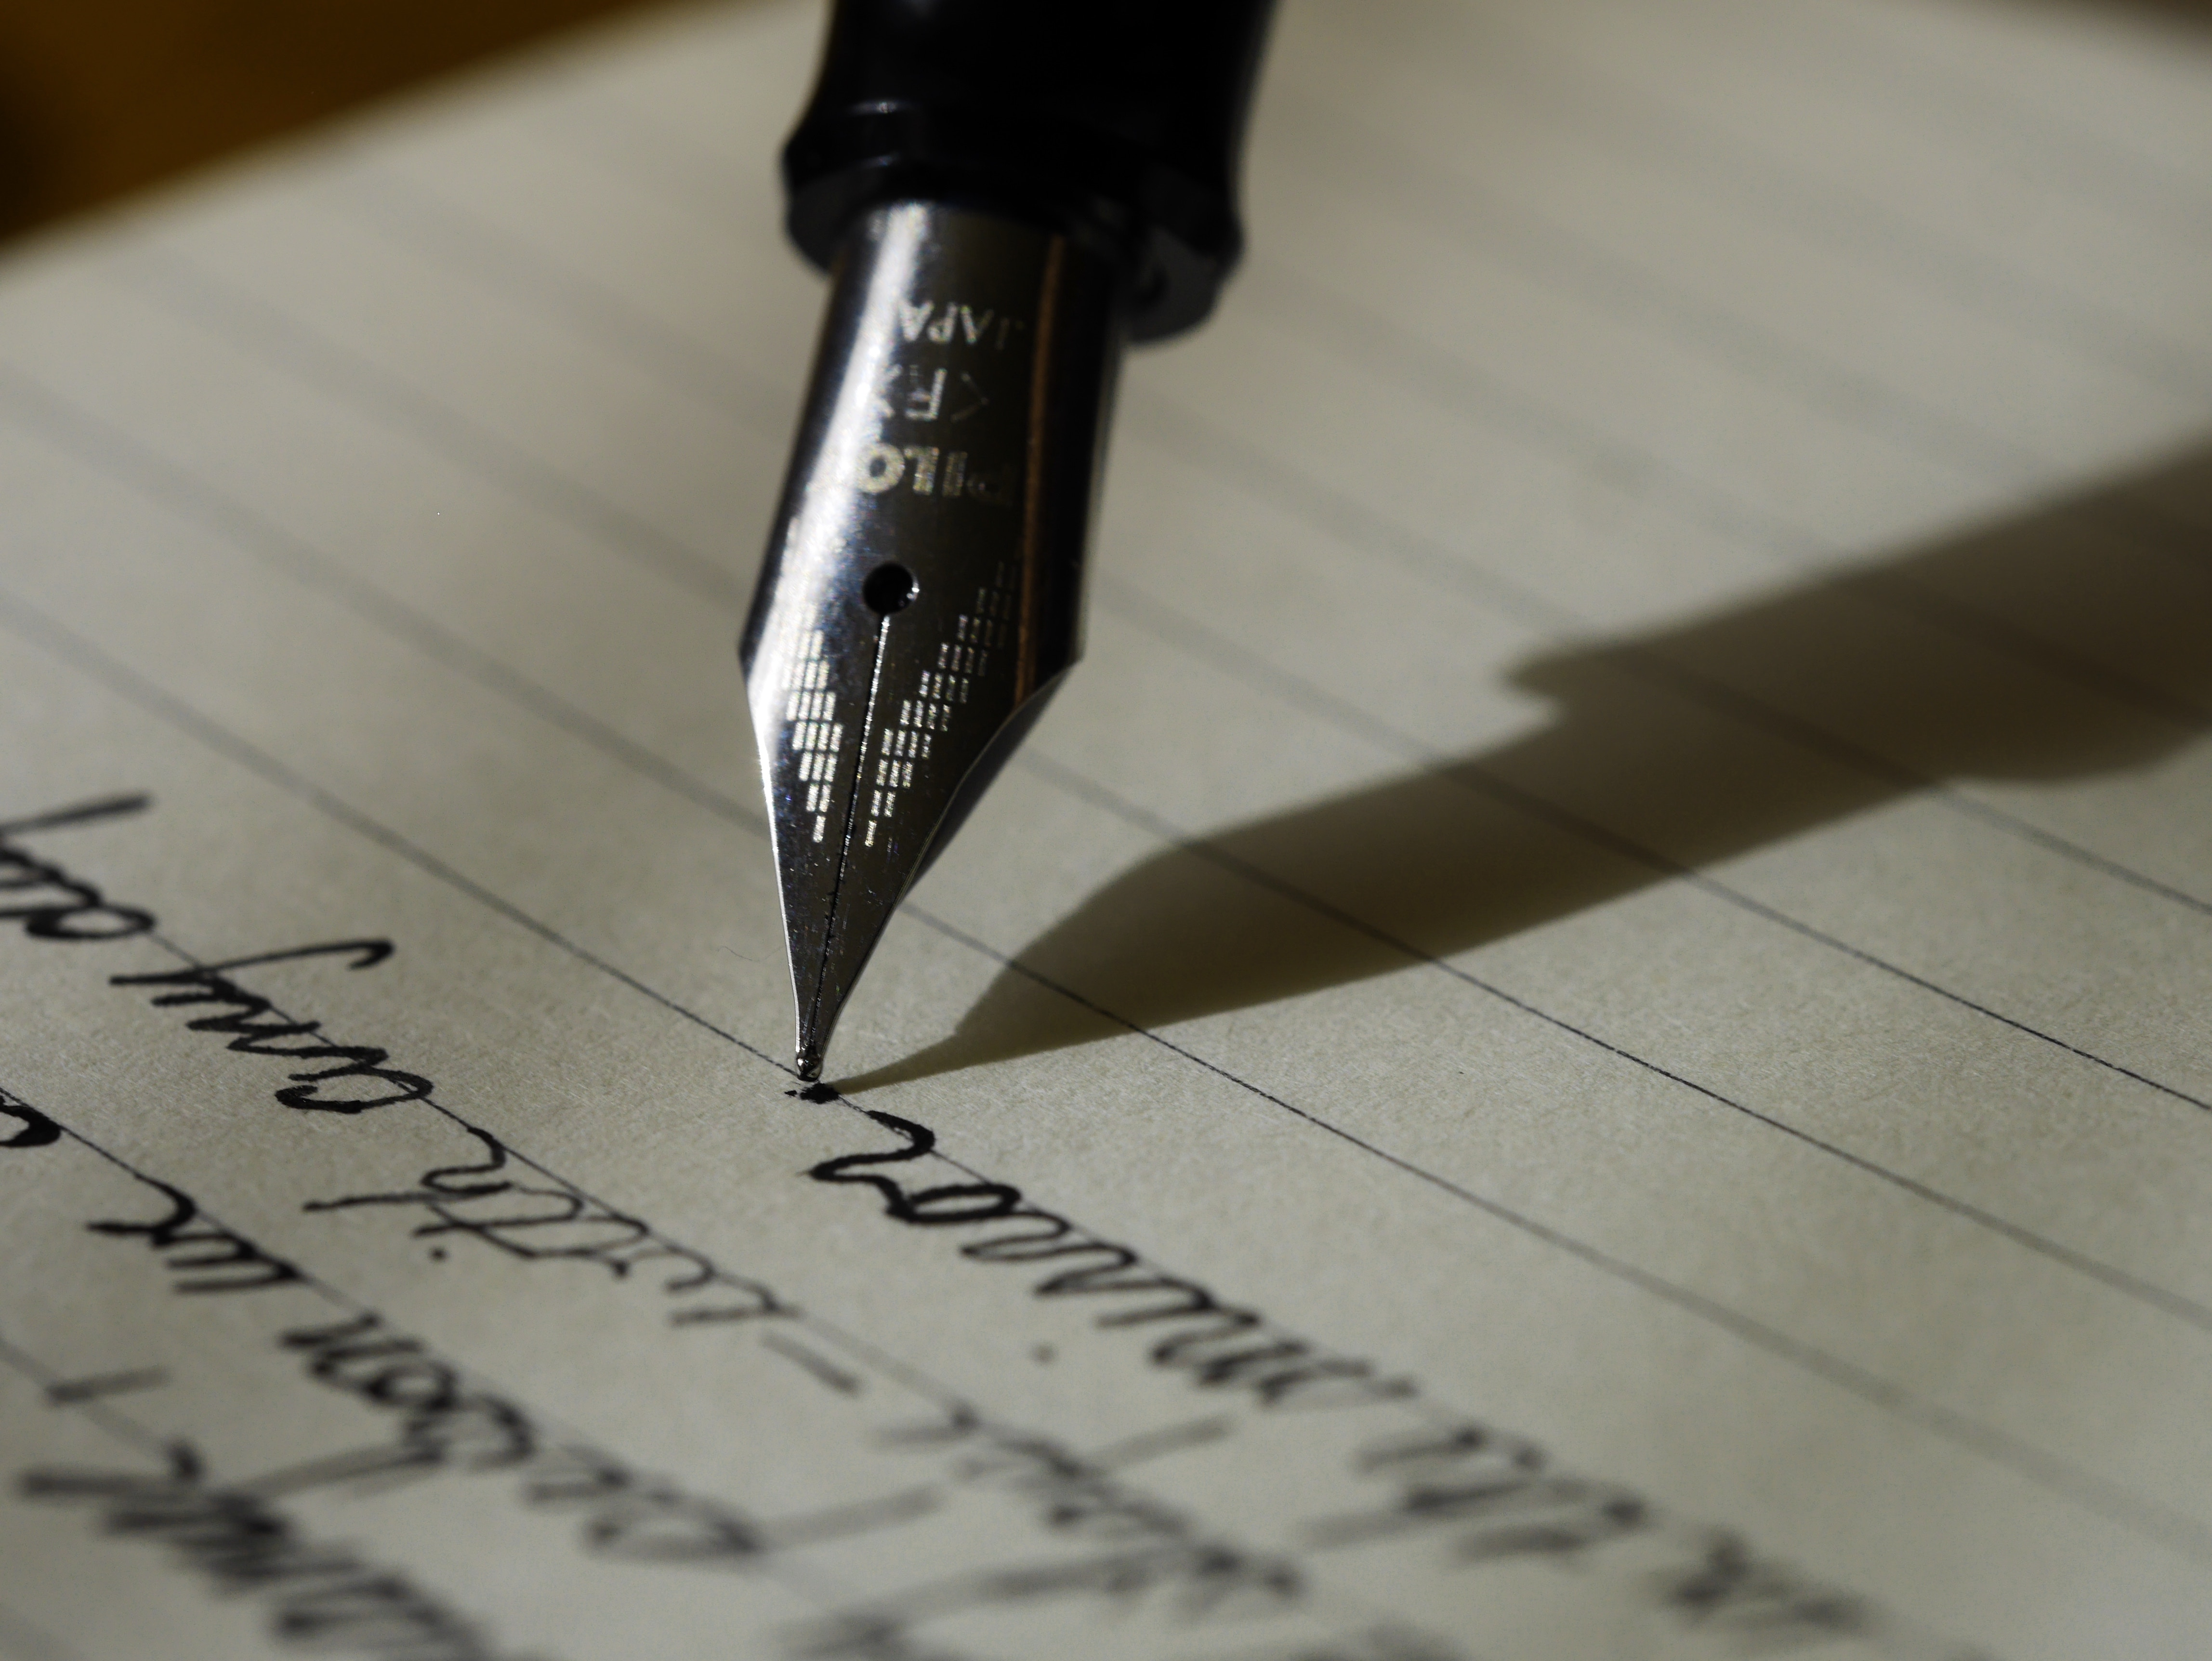 To Swear or Not To Swear: Where Are Your Boundaries As An Author?